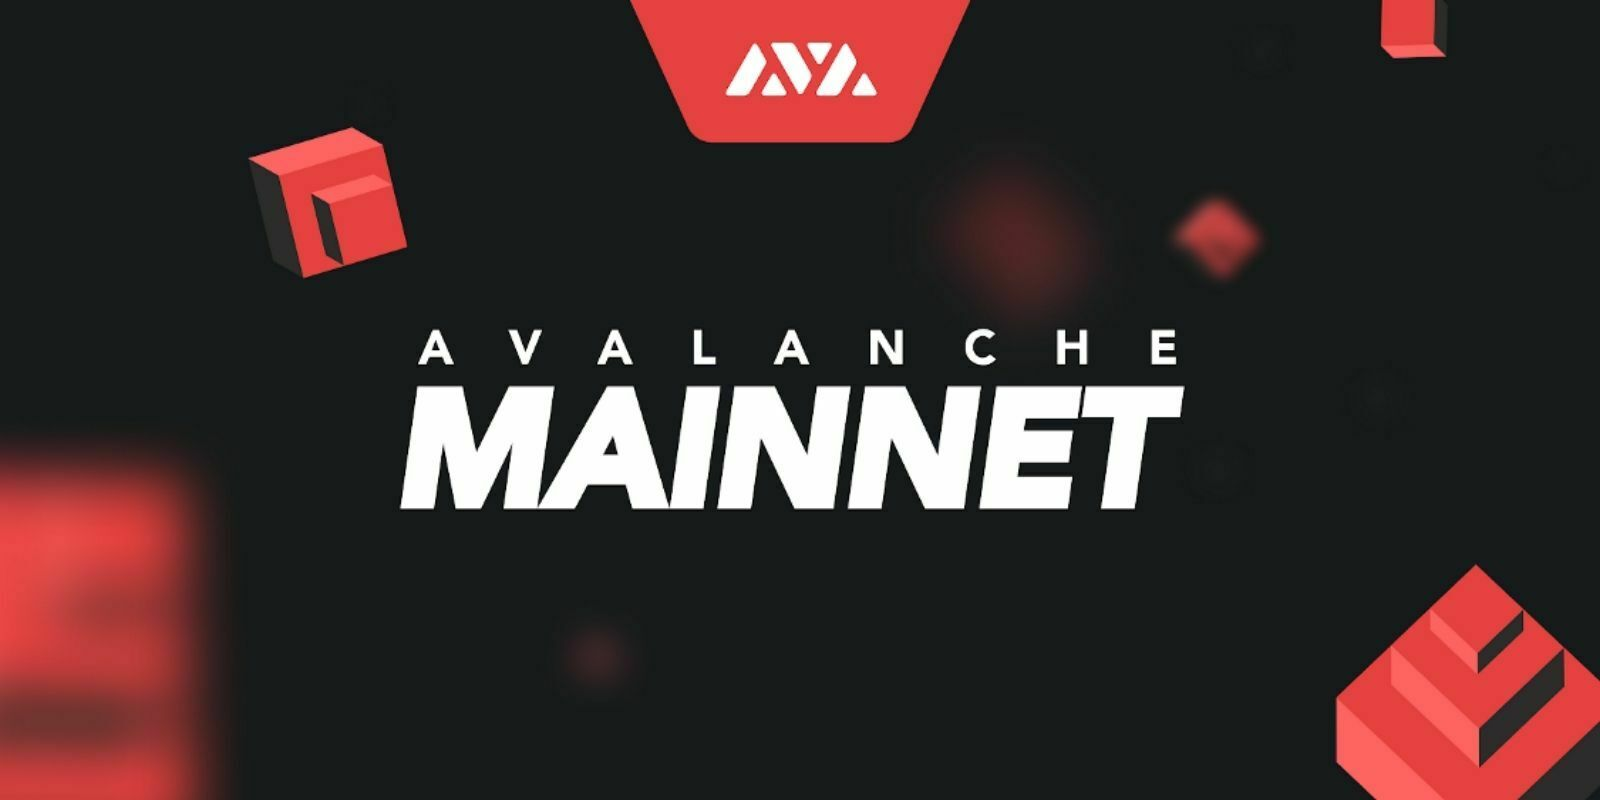 La plateforme de smart contracts Avalanche (AVAX) lance son mainnet